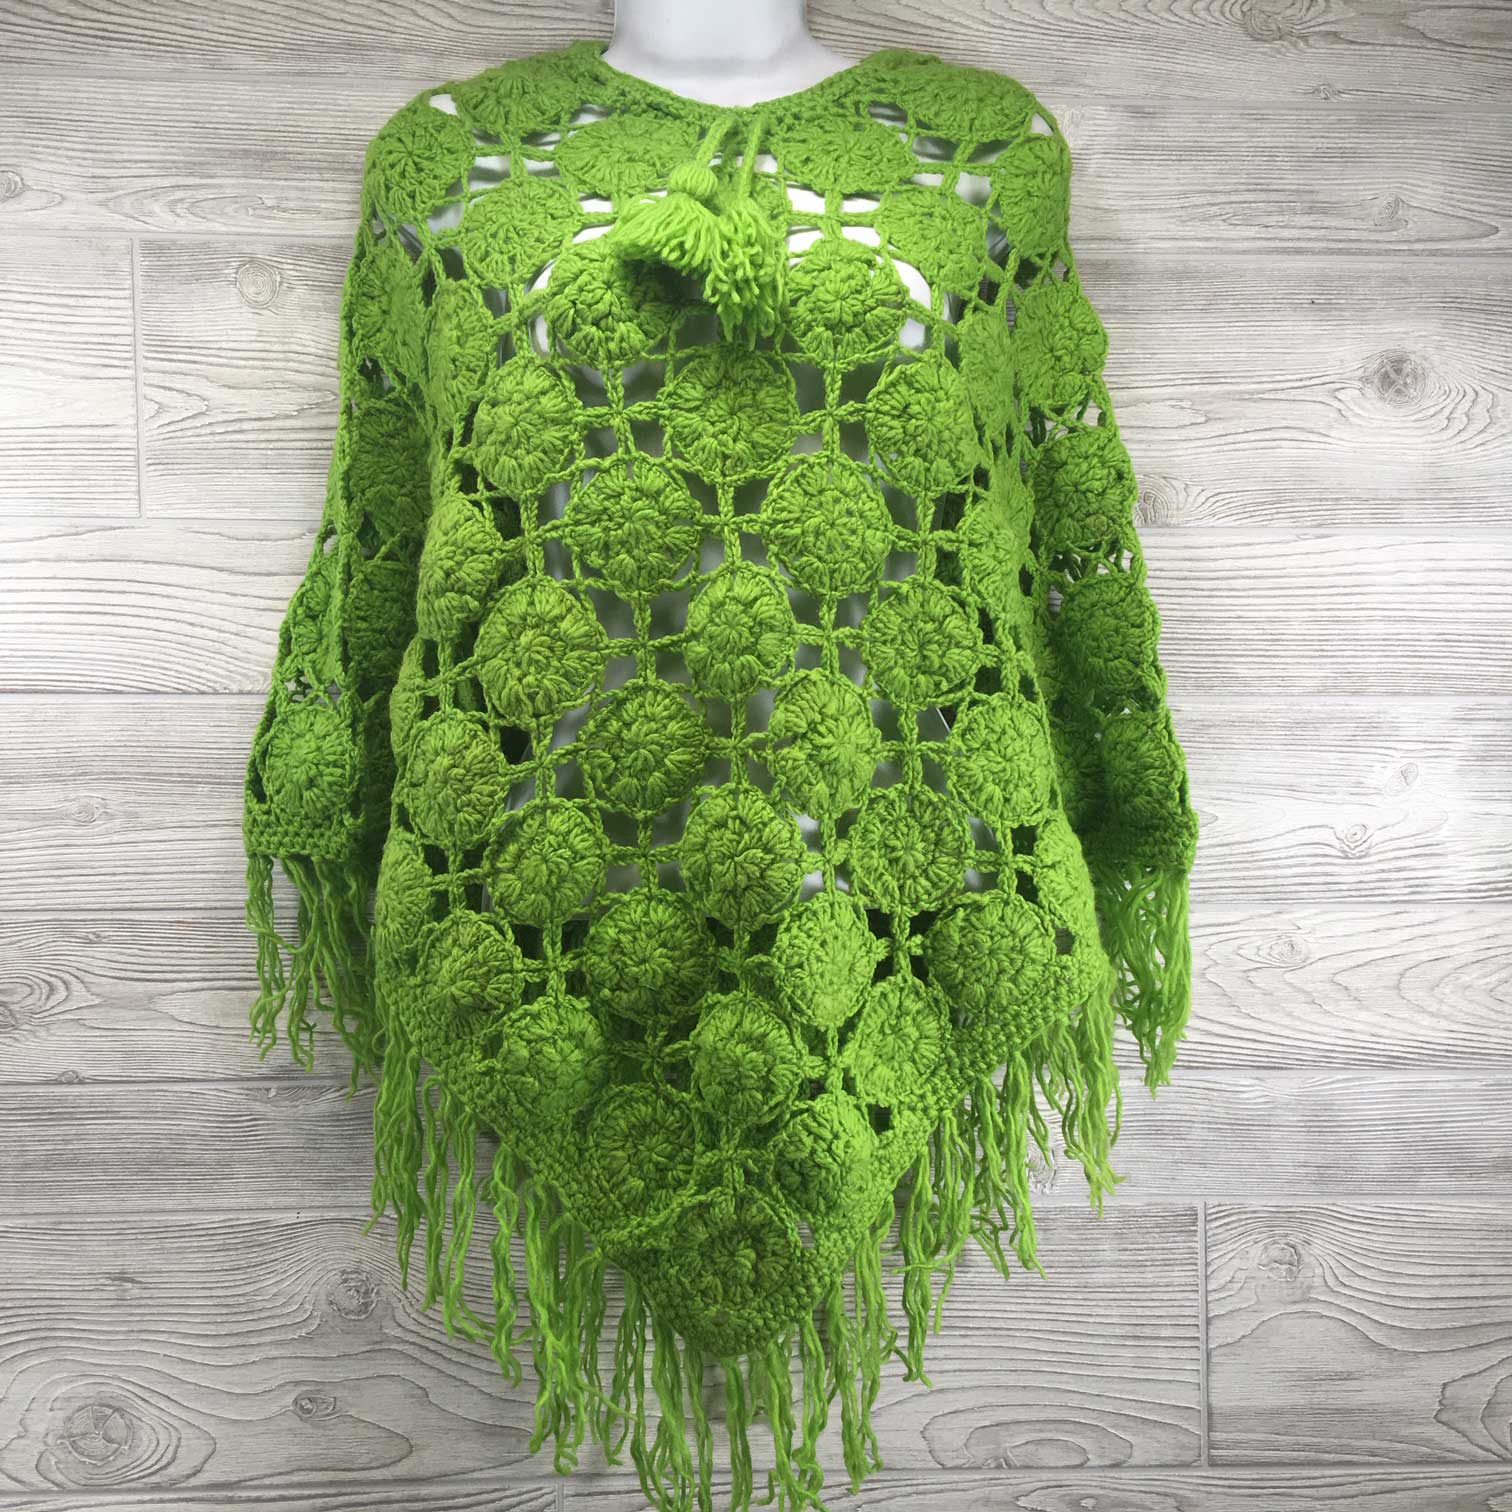 Women's Crochet Granny Square Boho Wool Poncho with Fringes - One Size Fits Most - Green